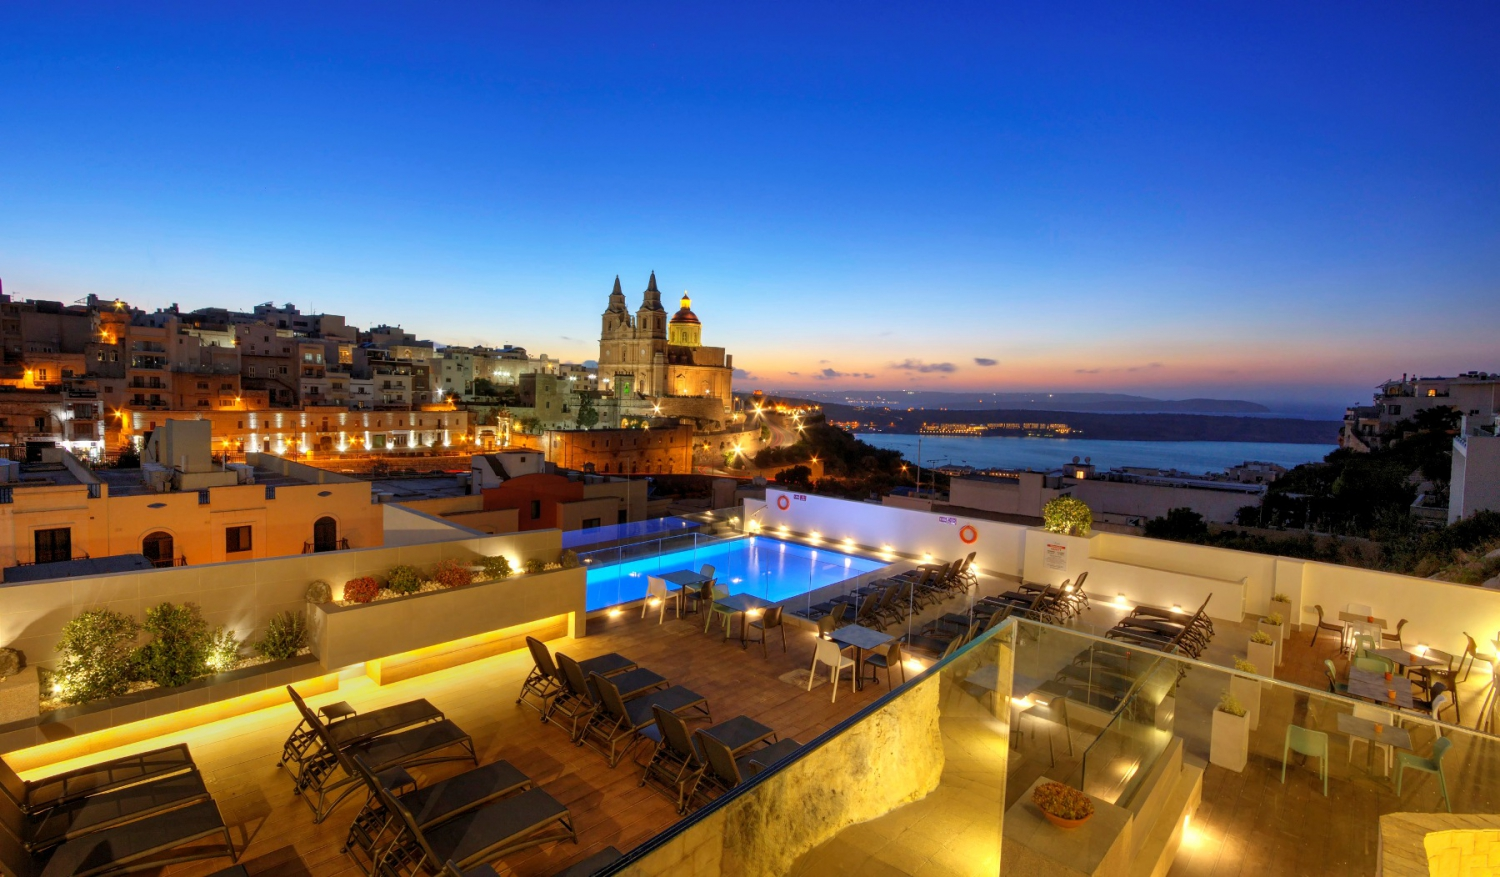 Best 5 Family Friendly Hotels in Malta